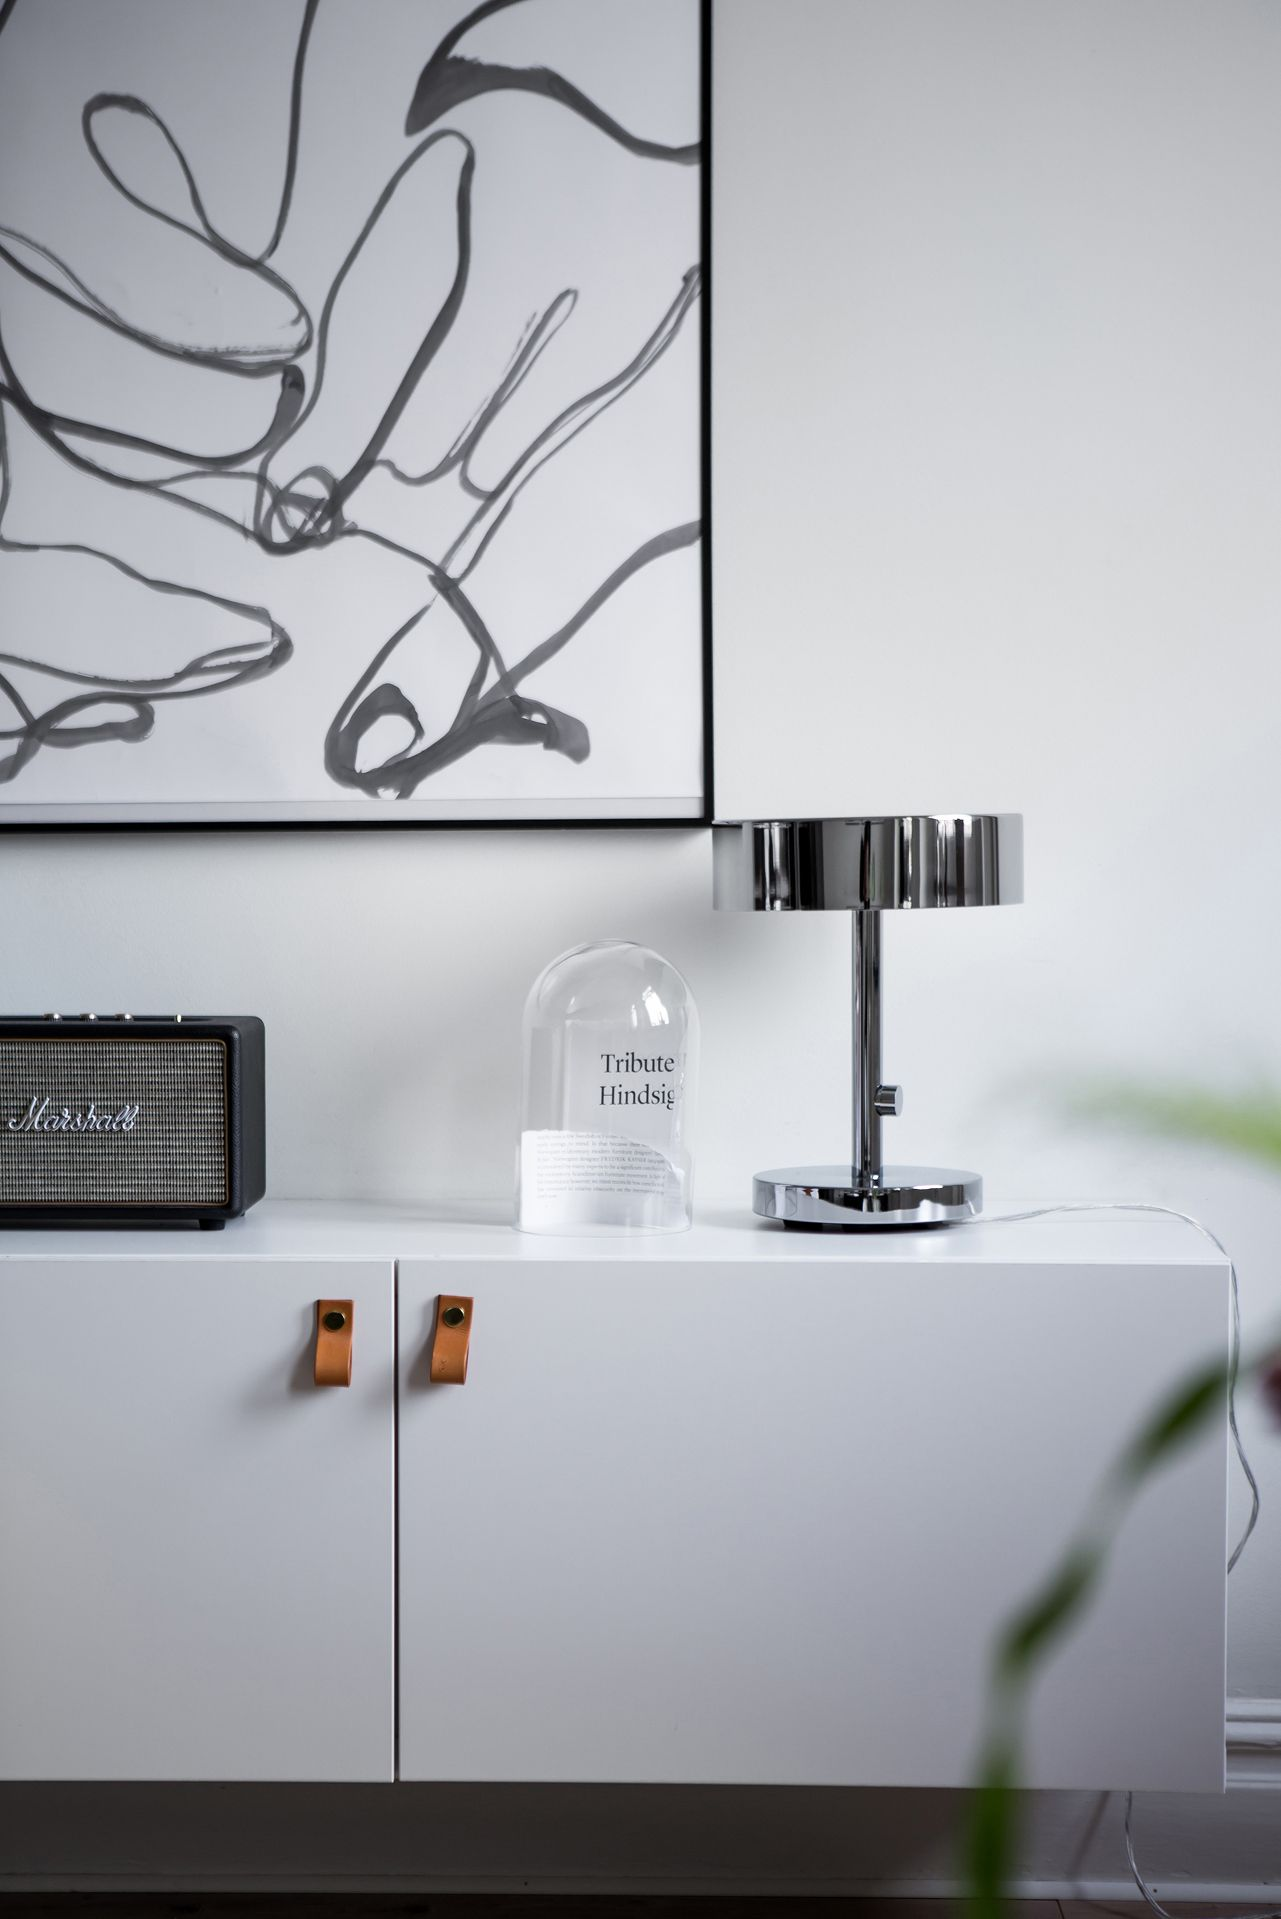 Ikea 'Bestå' with additional leather pulls & 'Stockholm 2017